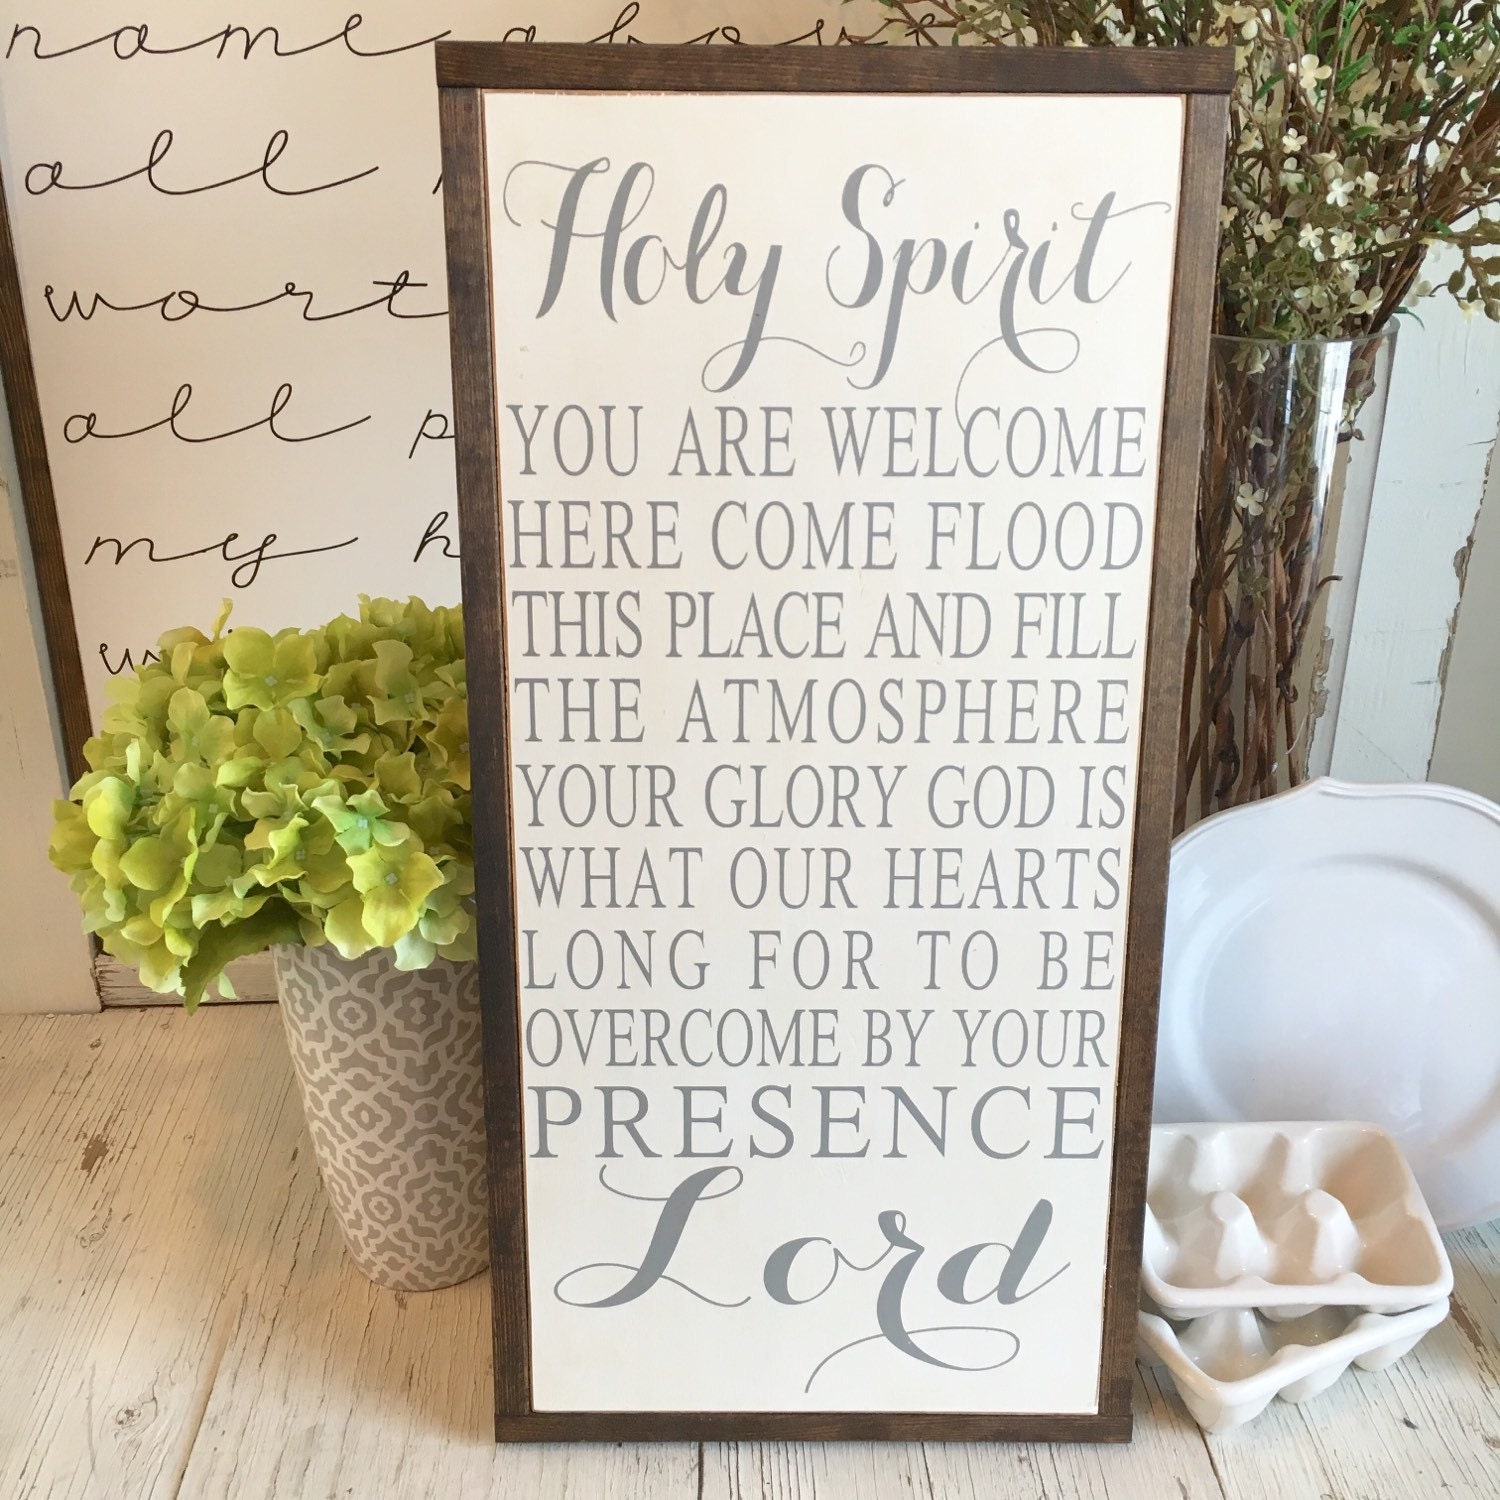 HOLY SPIRIT You Are Wel e Here framed wood sign 13 x 26